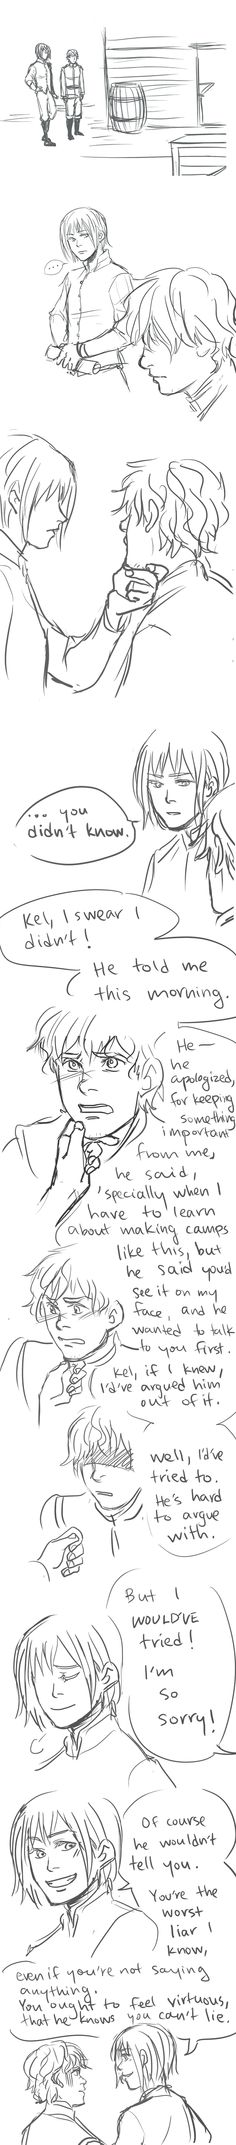 Kel and Owen's conversation from Lady Knight by Tamora Pierce --drawn by Minuiko